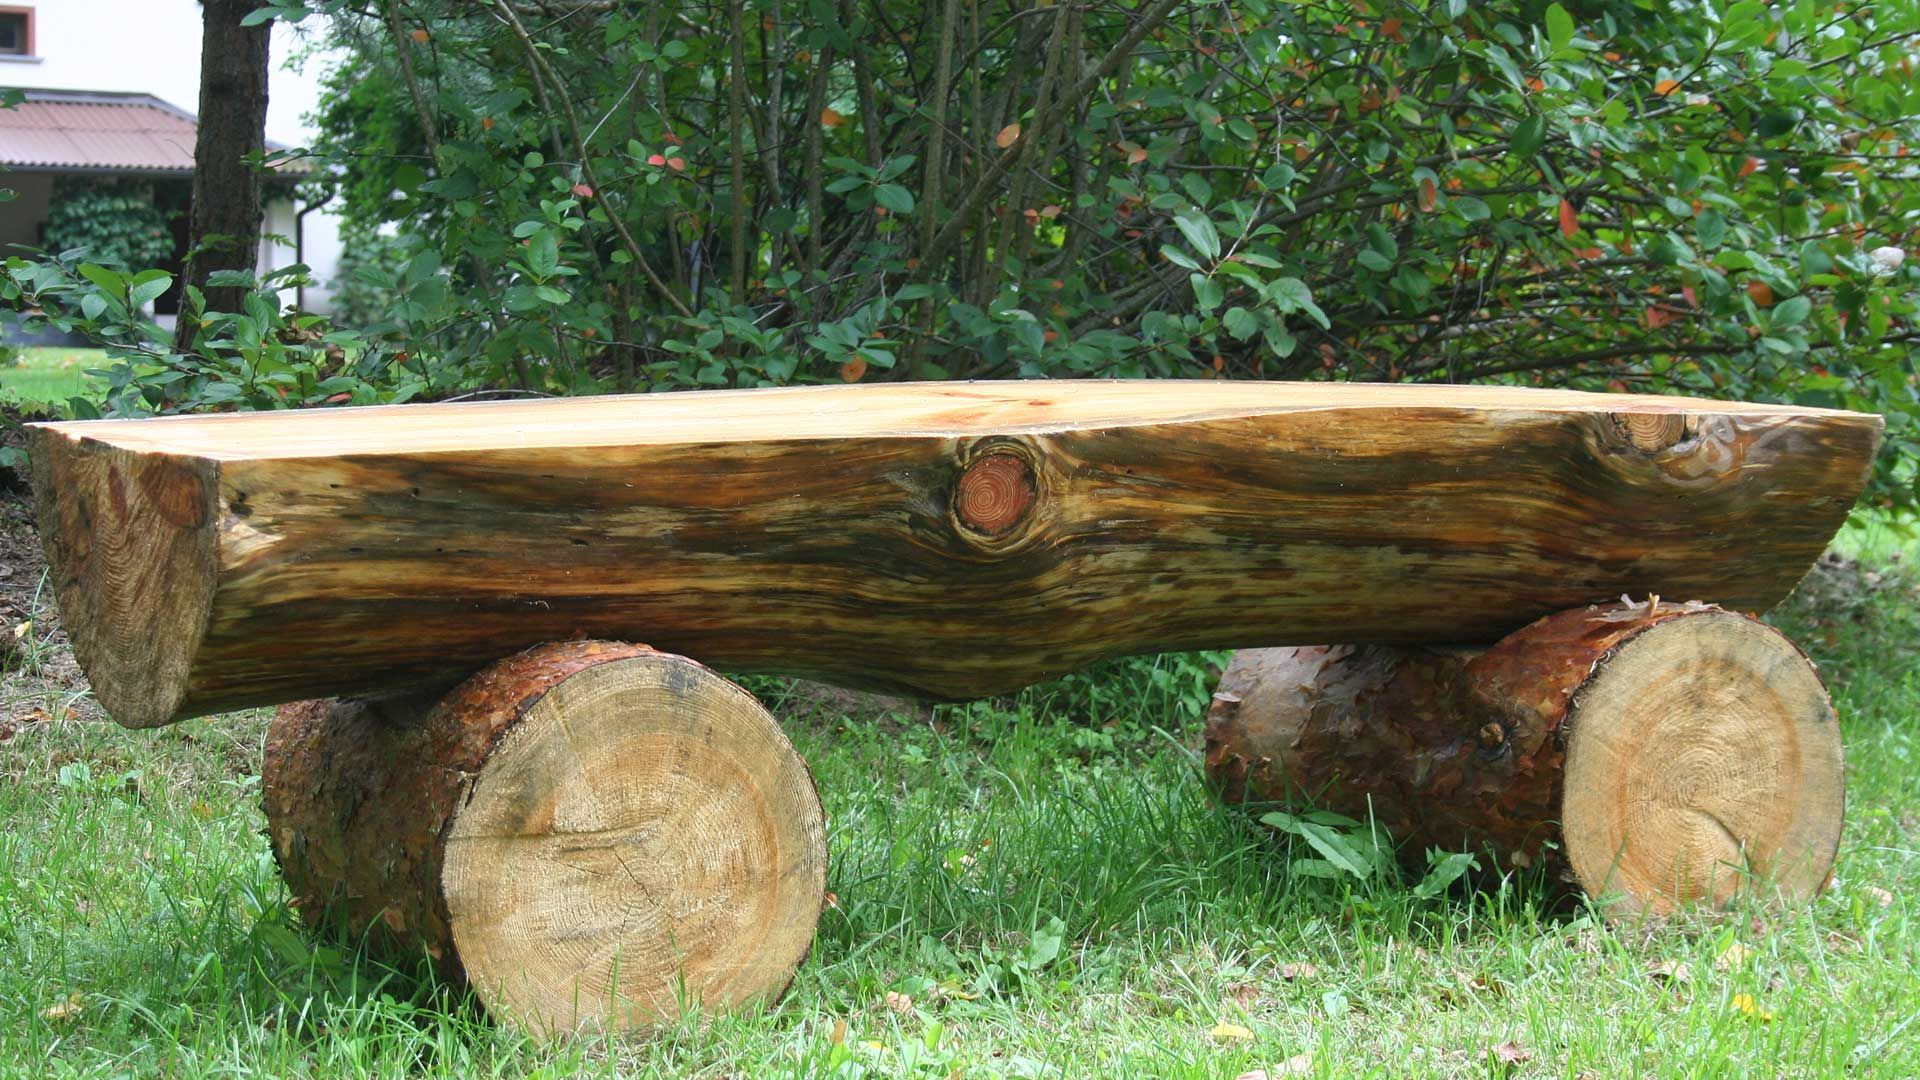 Cut down to make log bench and other